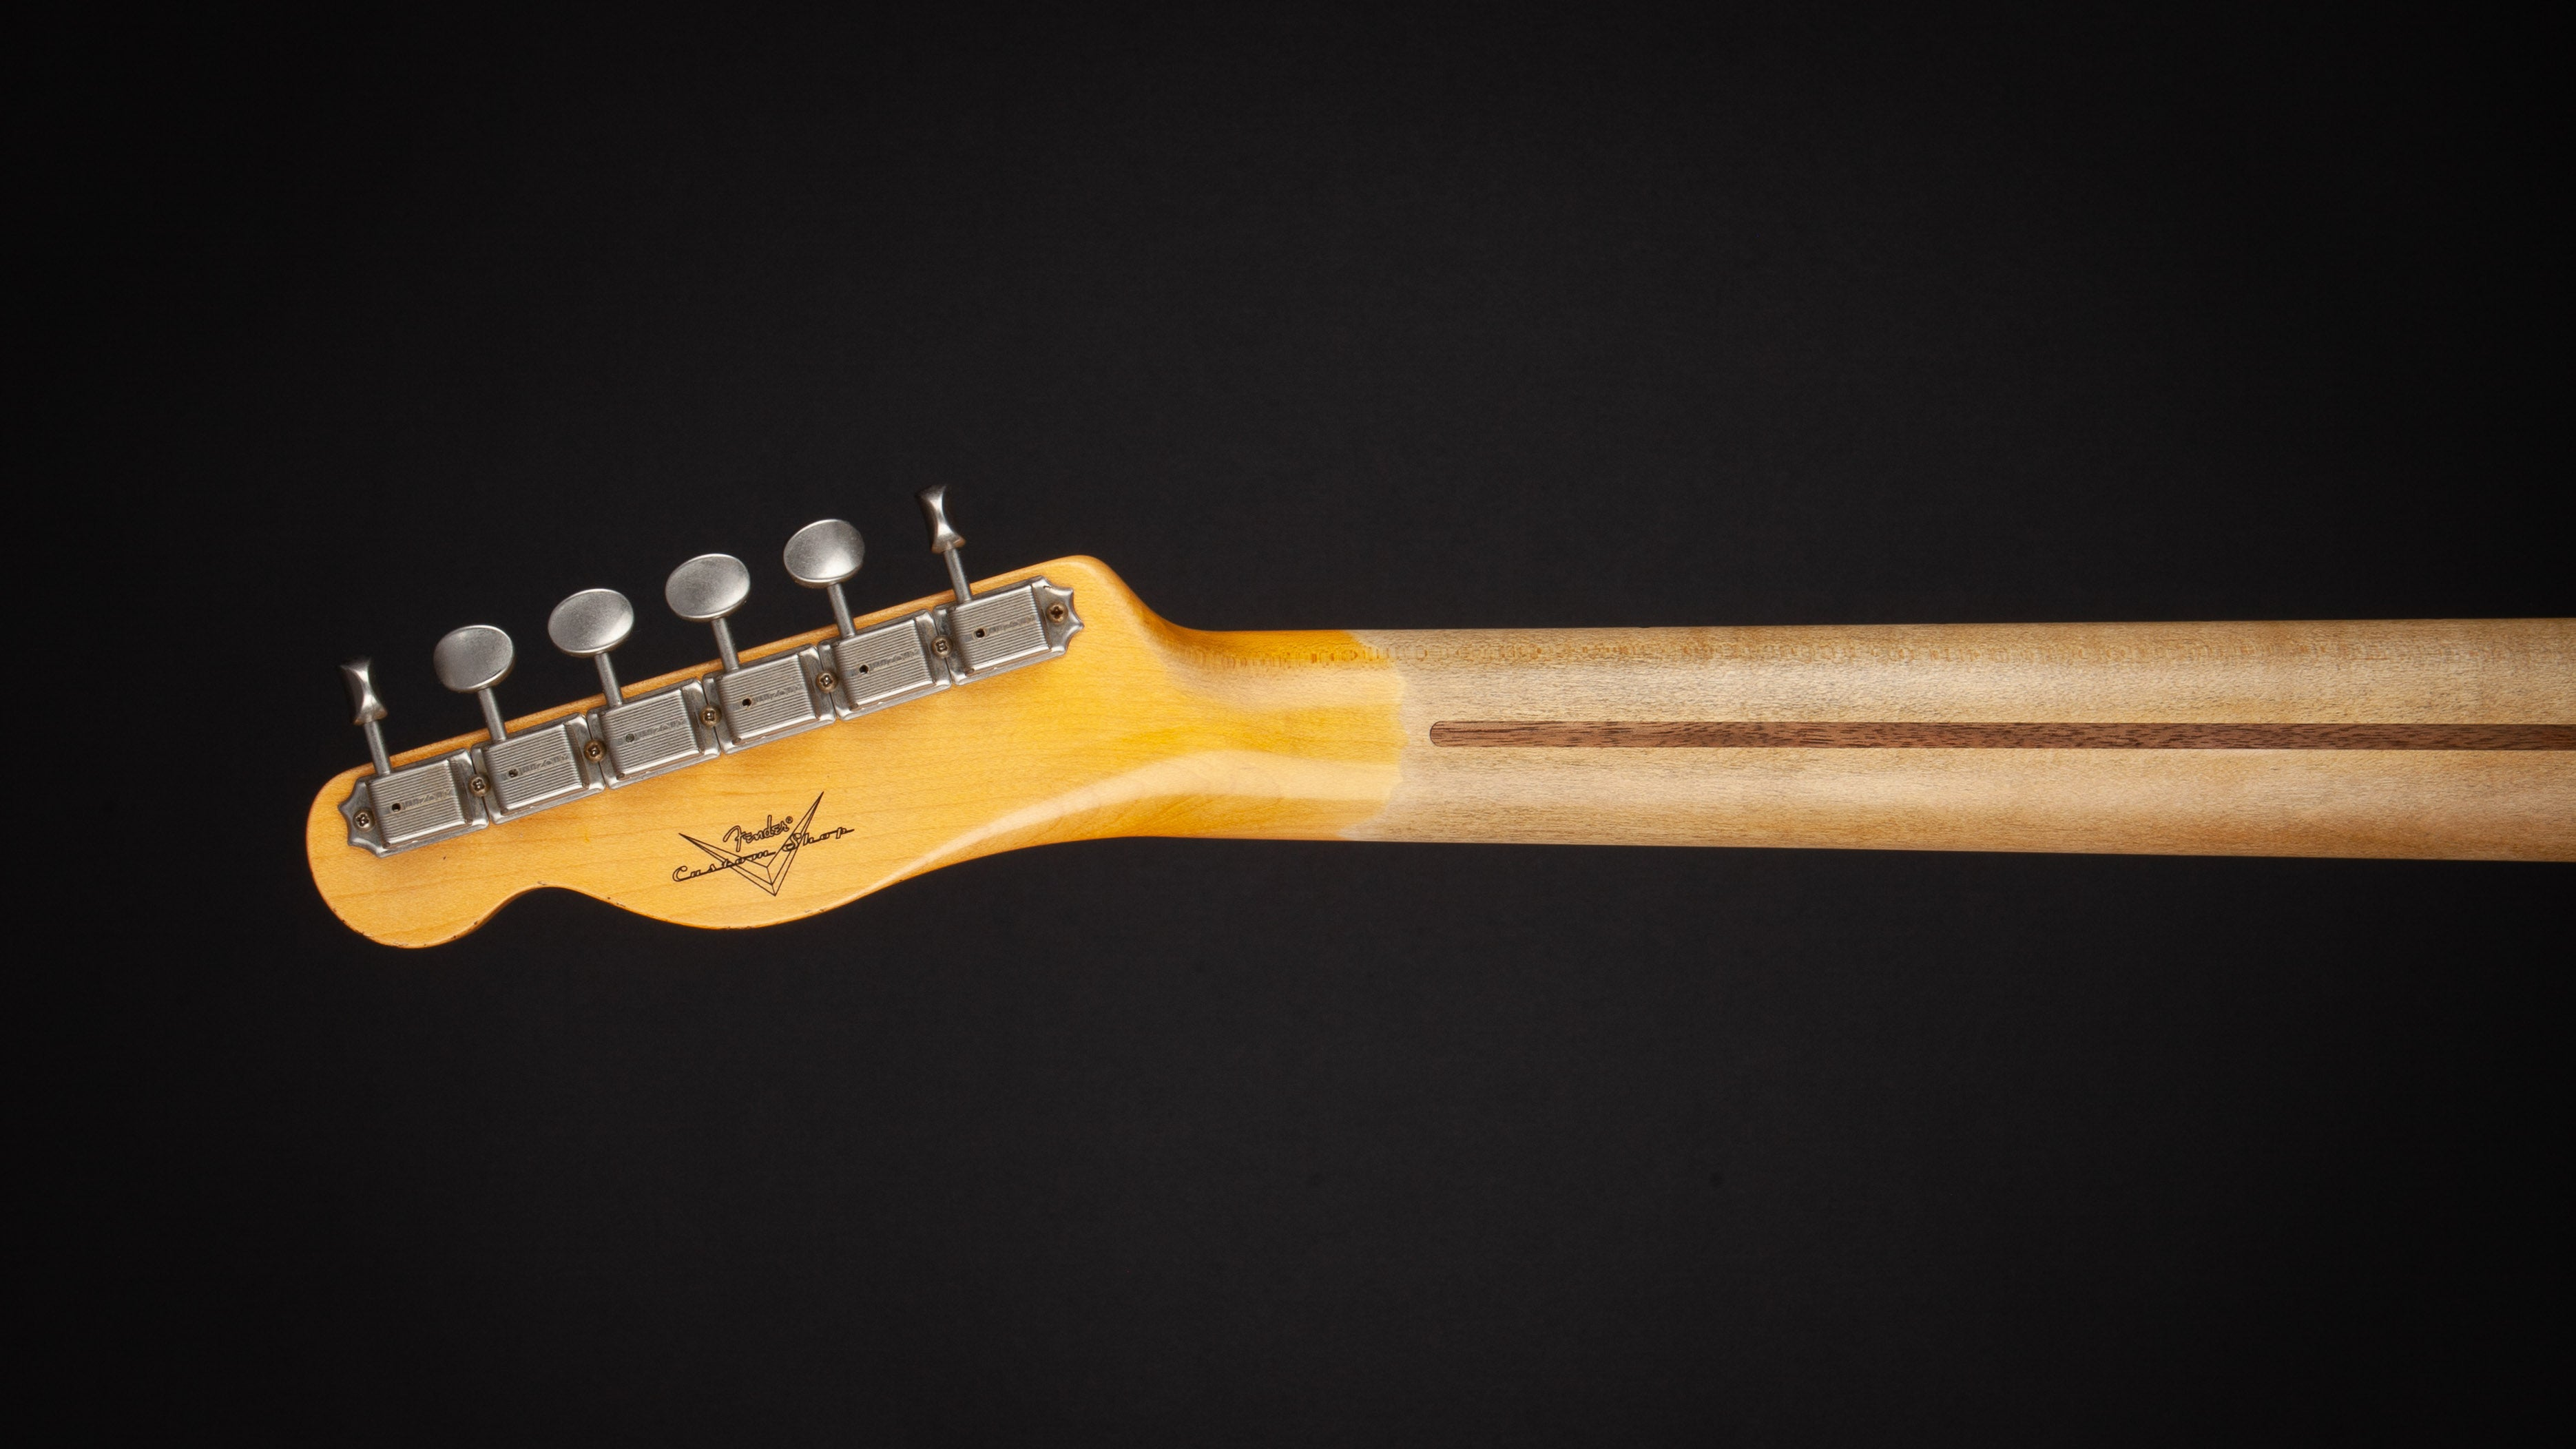 Fender Custom Shop:52 Telecaster Butterscotch Journeyman #R99598